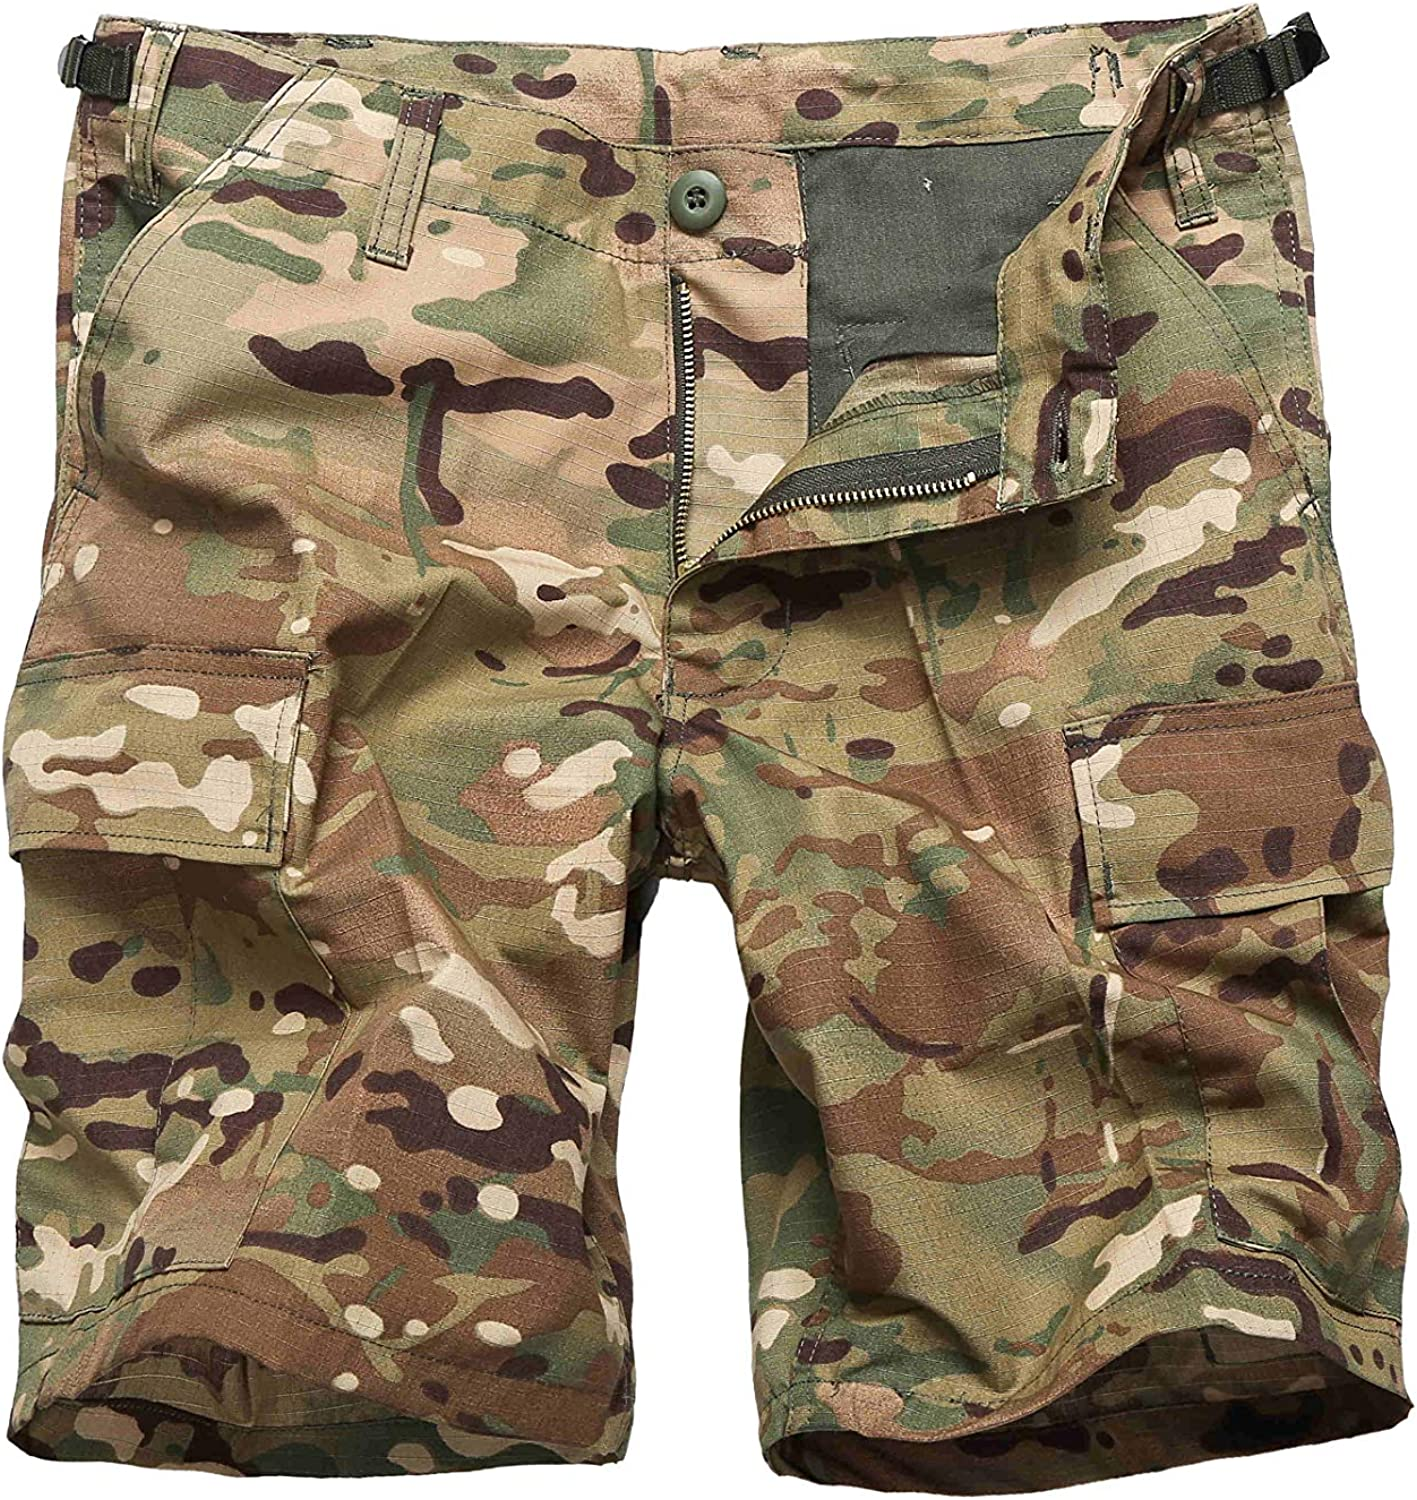 Backbone Mens Army Tactical Military BDU Camouflage Shorts Work Fishing Camping Casual Cargo Shorts